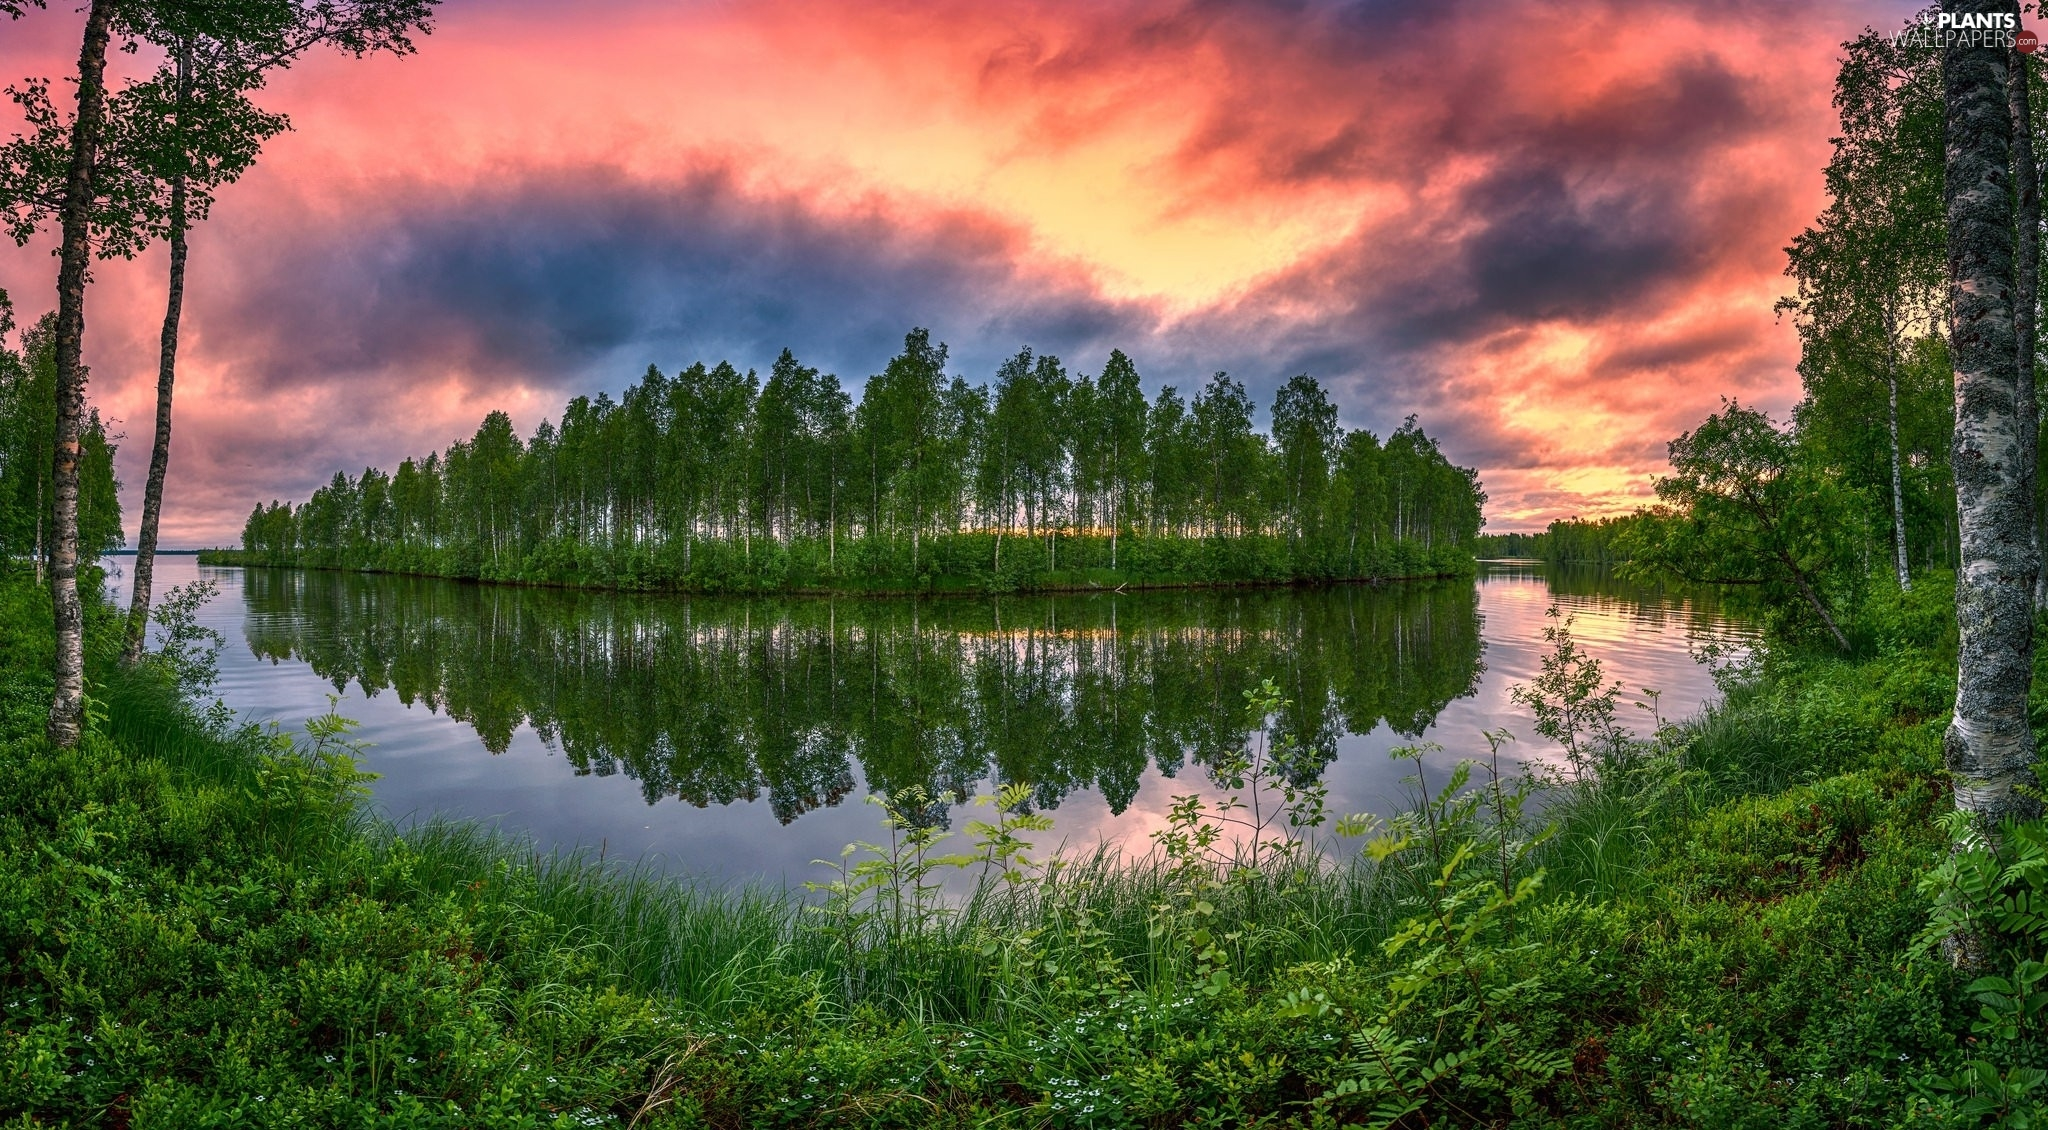 birch, trees, Great Sunsets, viewes, River, VEGETATION, clouds